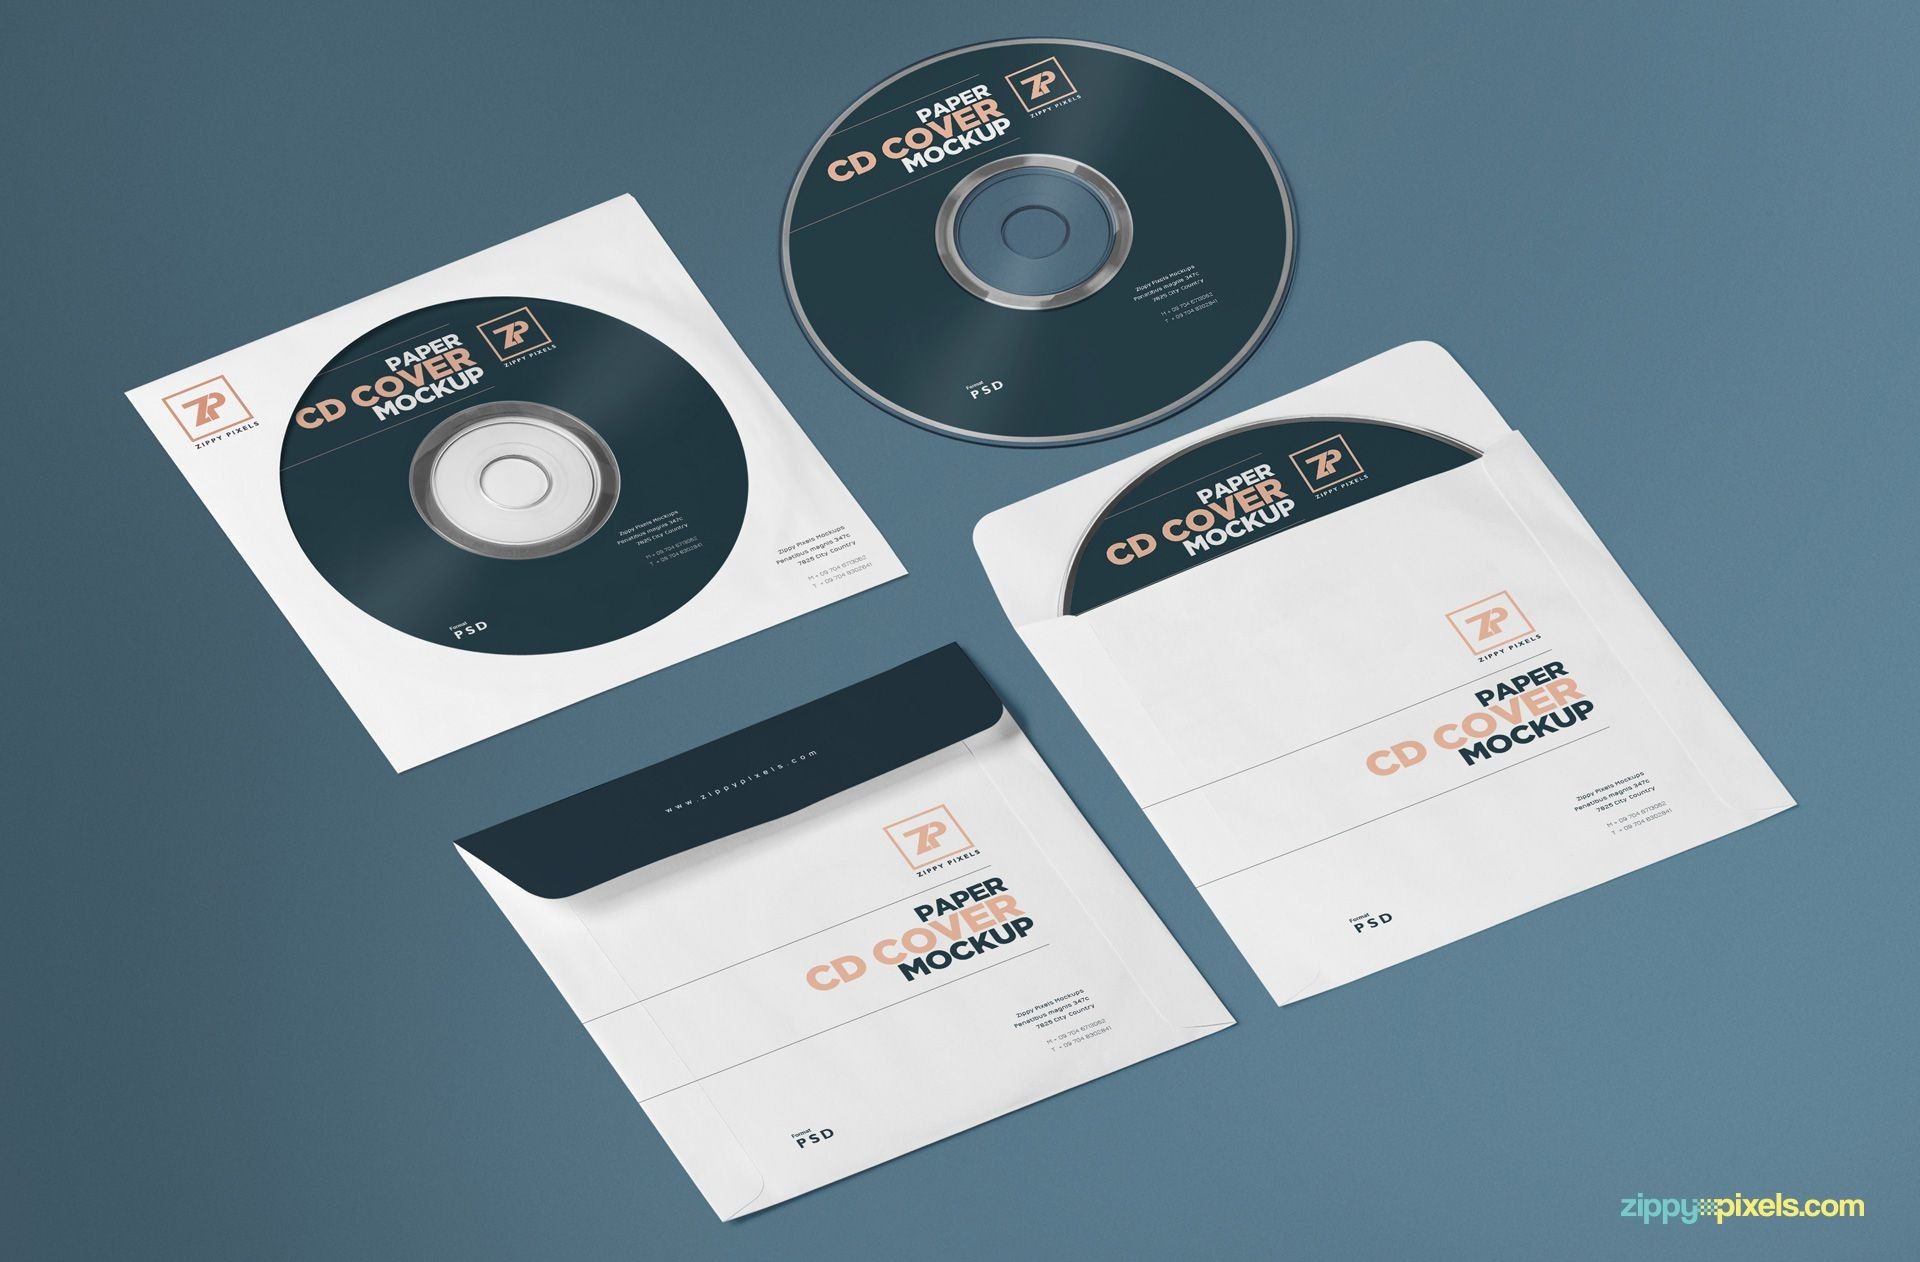 000 Incredible Cd Cover Template Psd Photo  Sleeve Case Free Download Layout1920